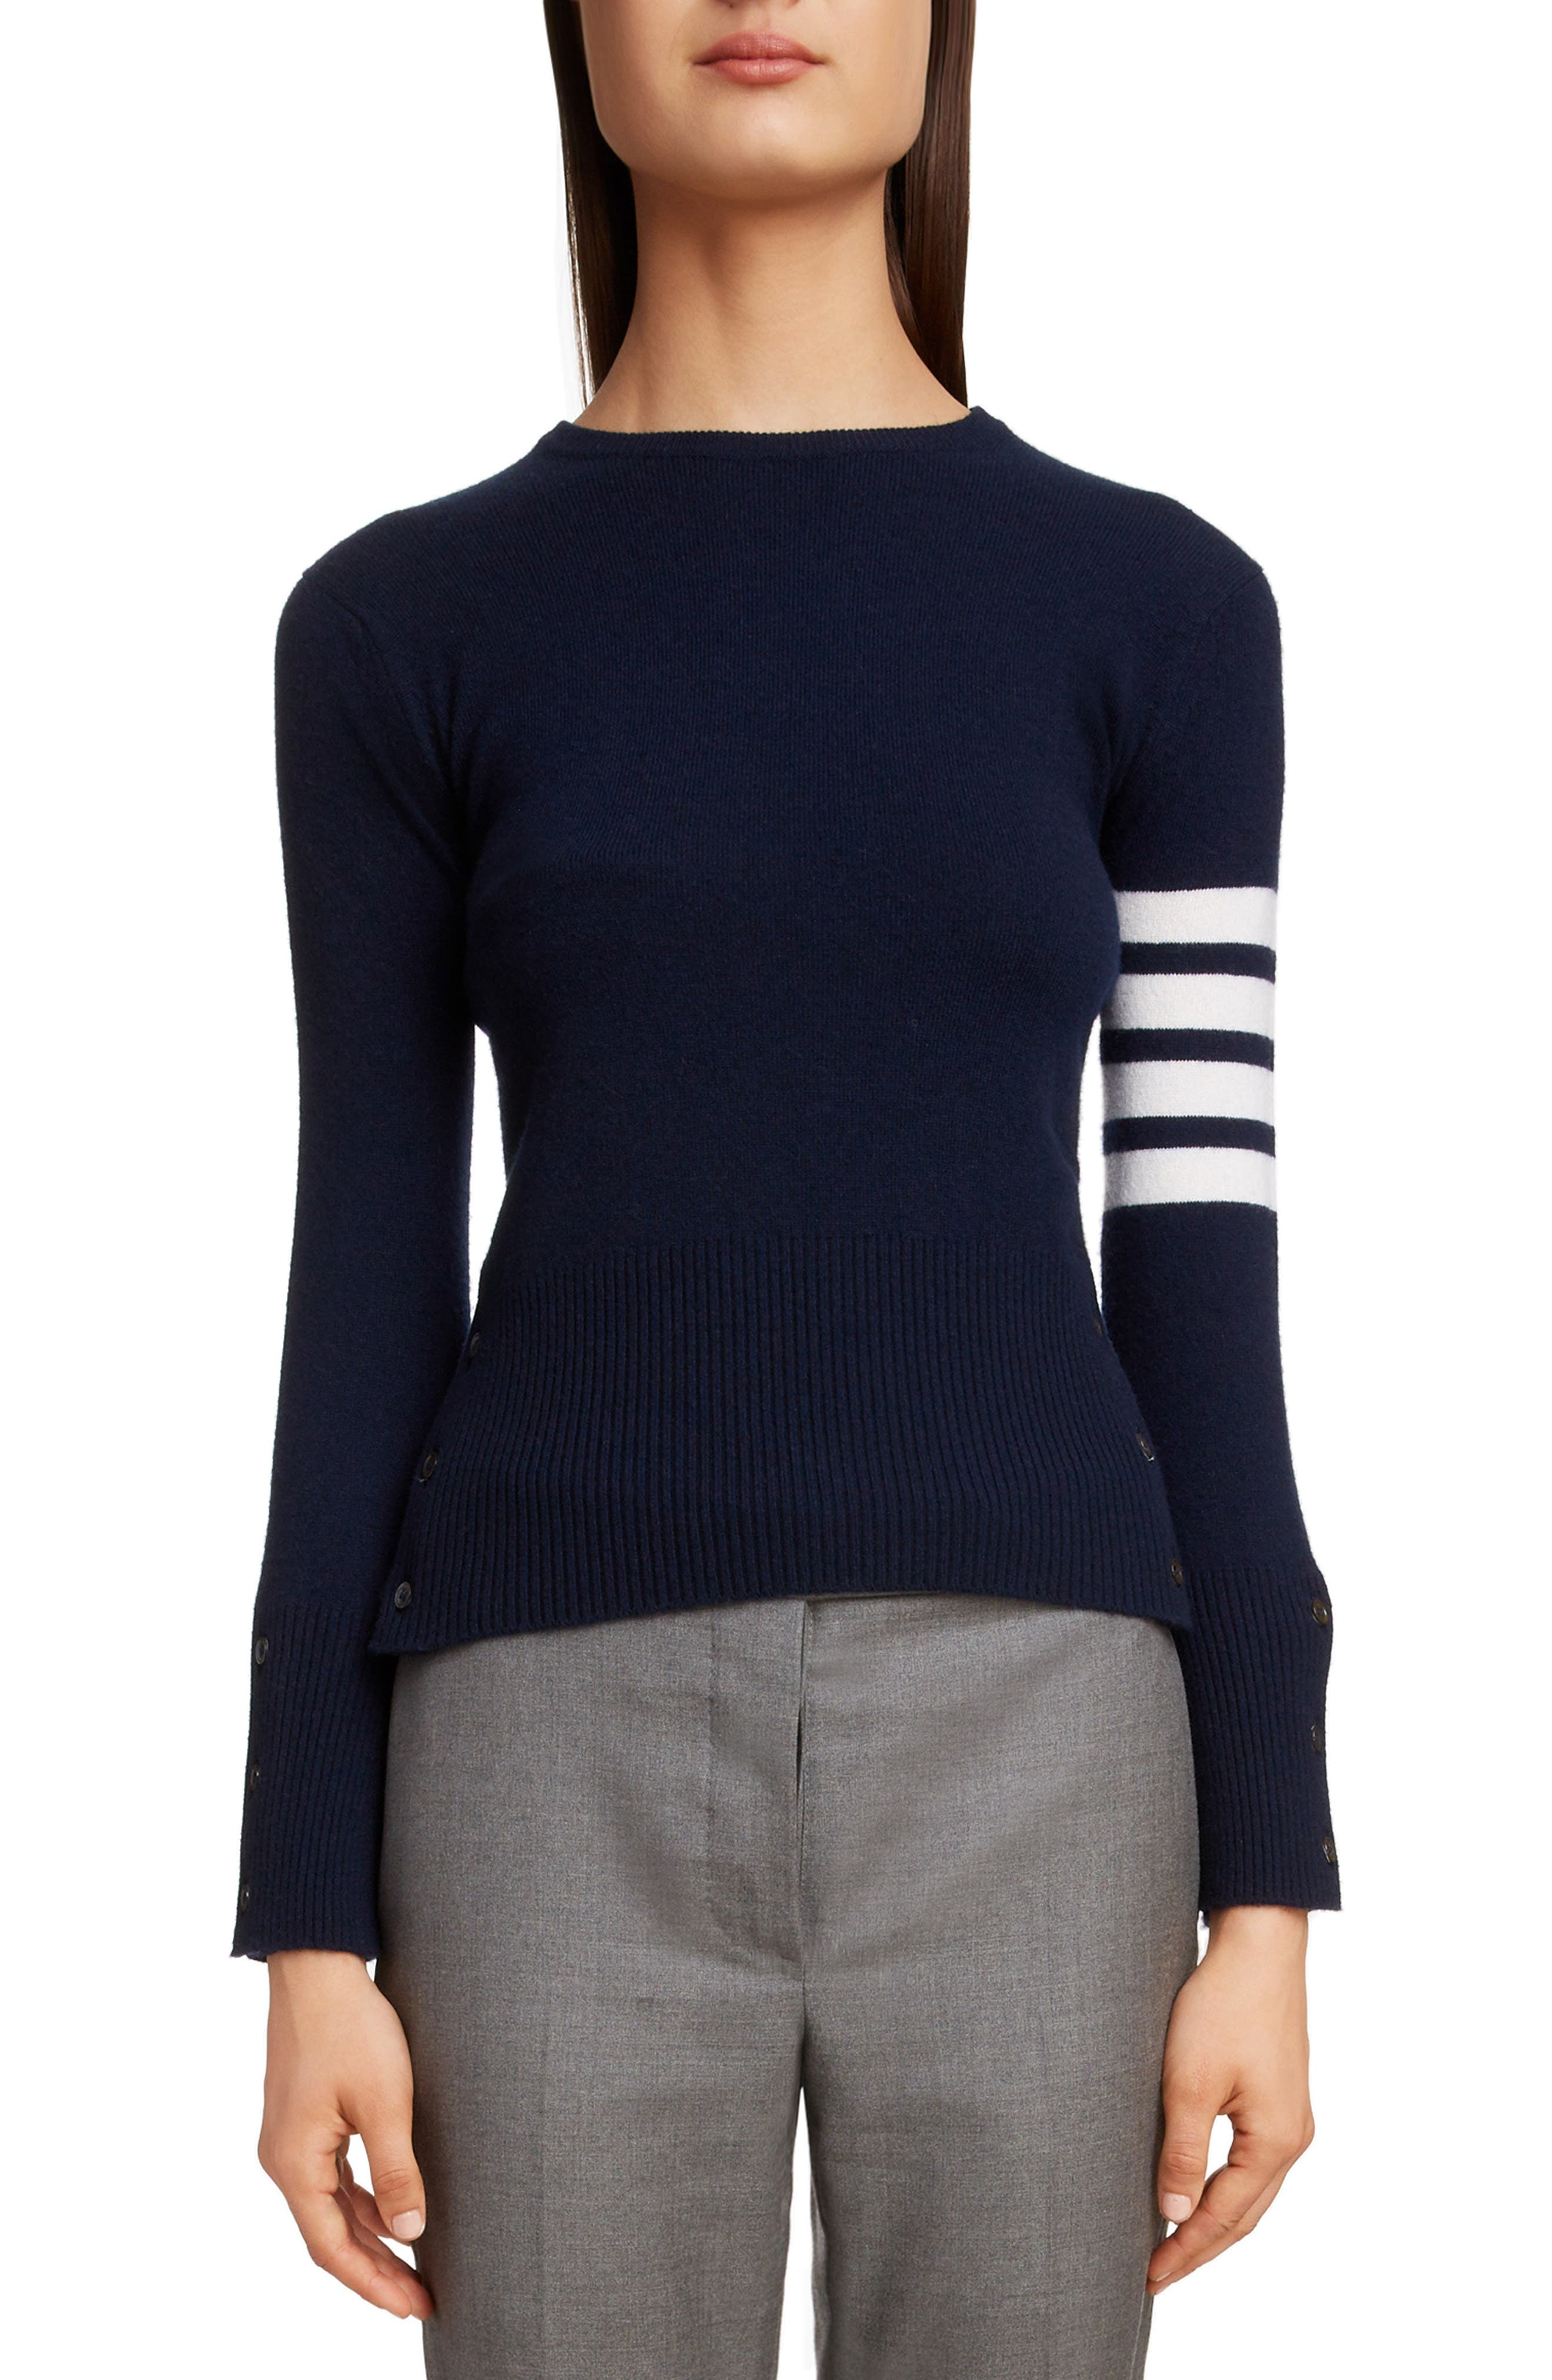 THOM BROWNE, Classic Crewneck Cashmere Sweater, Main thumbnail 1, color, NAVY